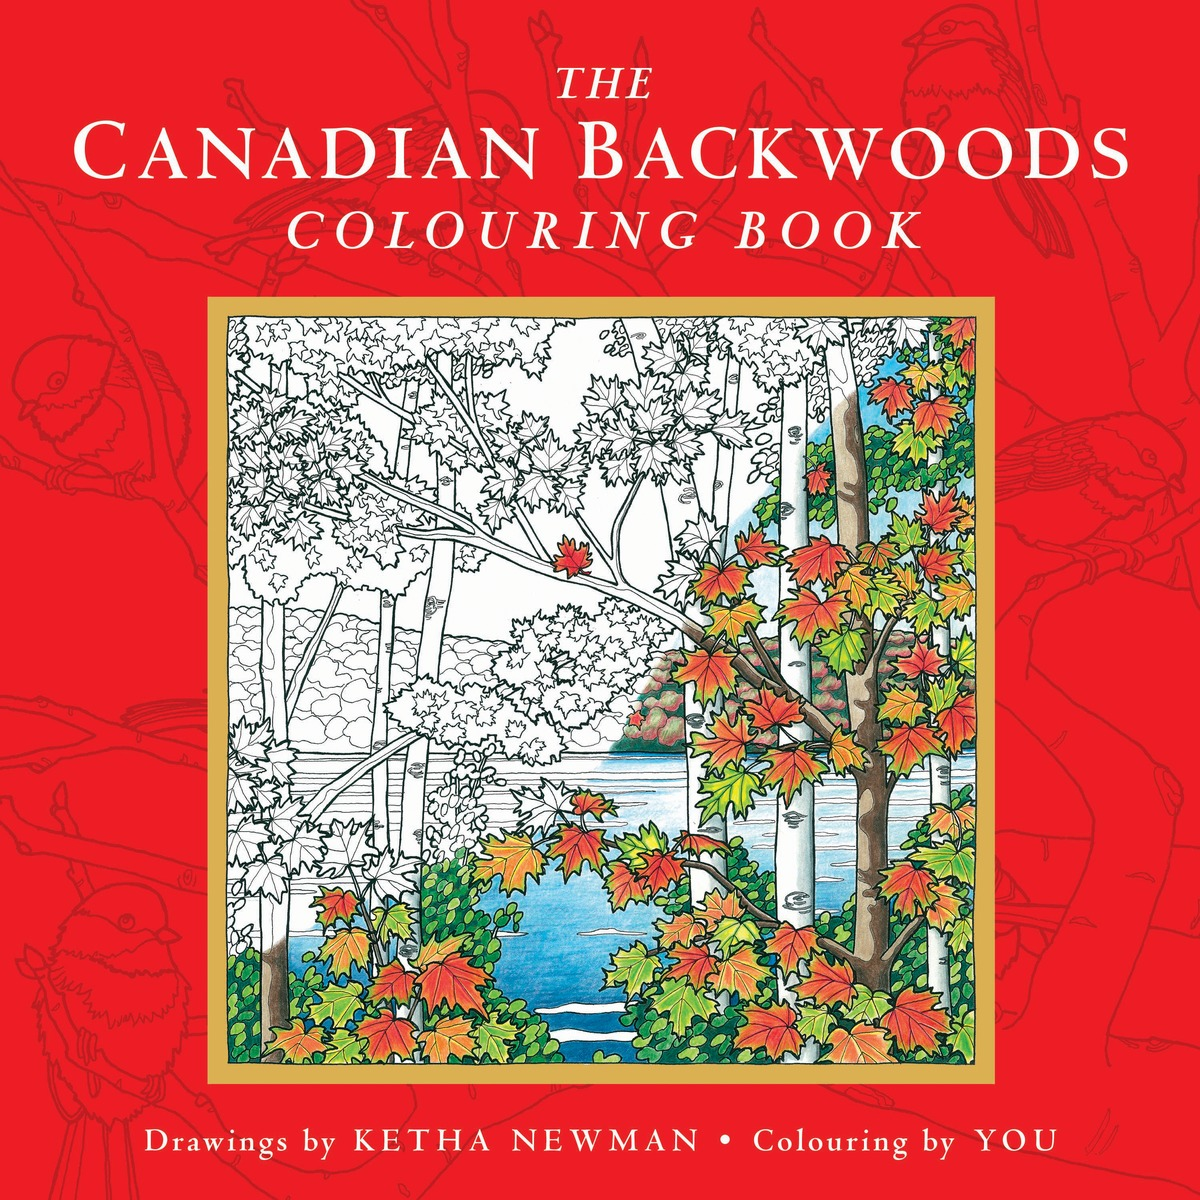 earthdaycolouring